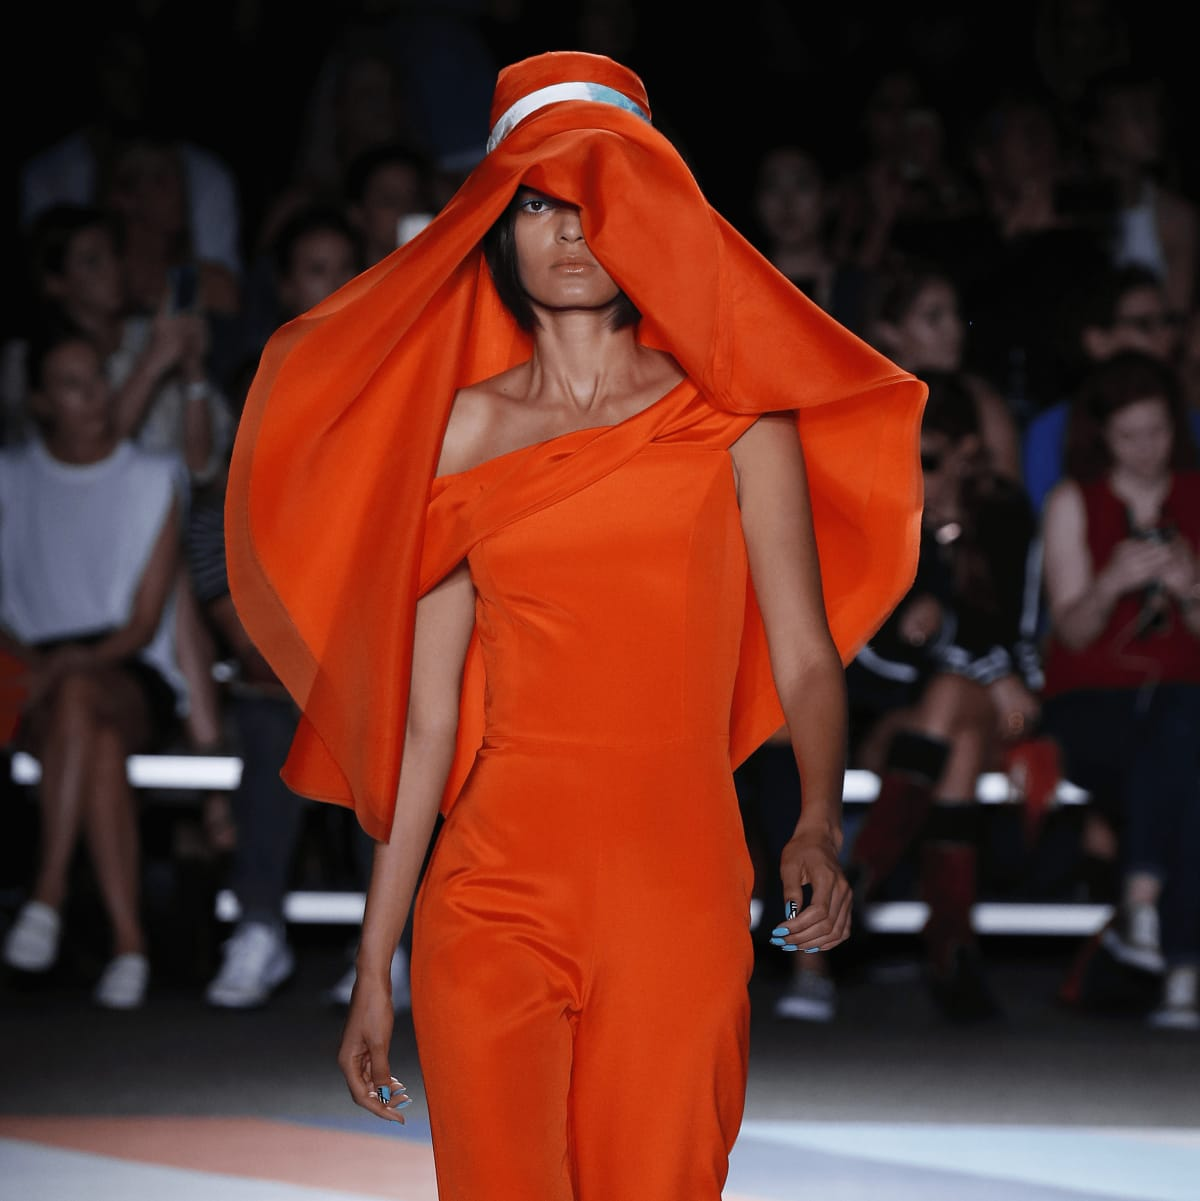 Christian Siriano look 13 orange outfit